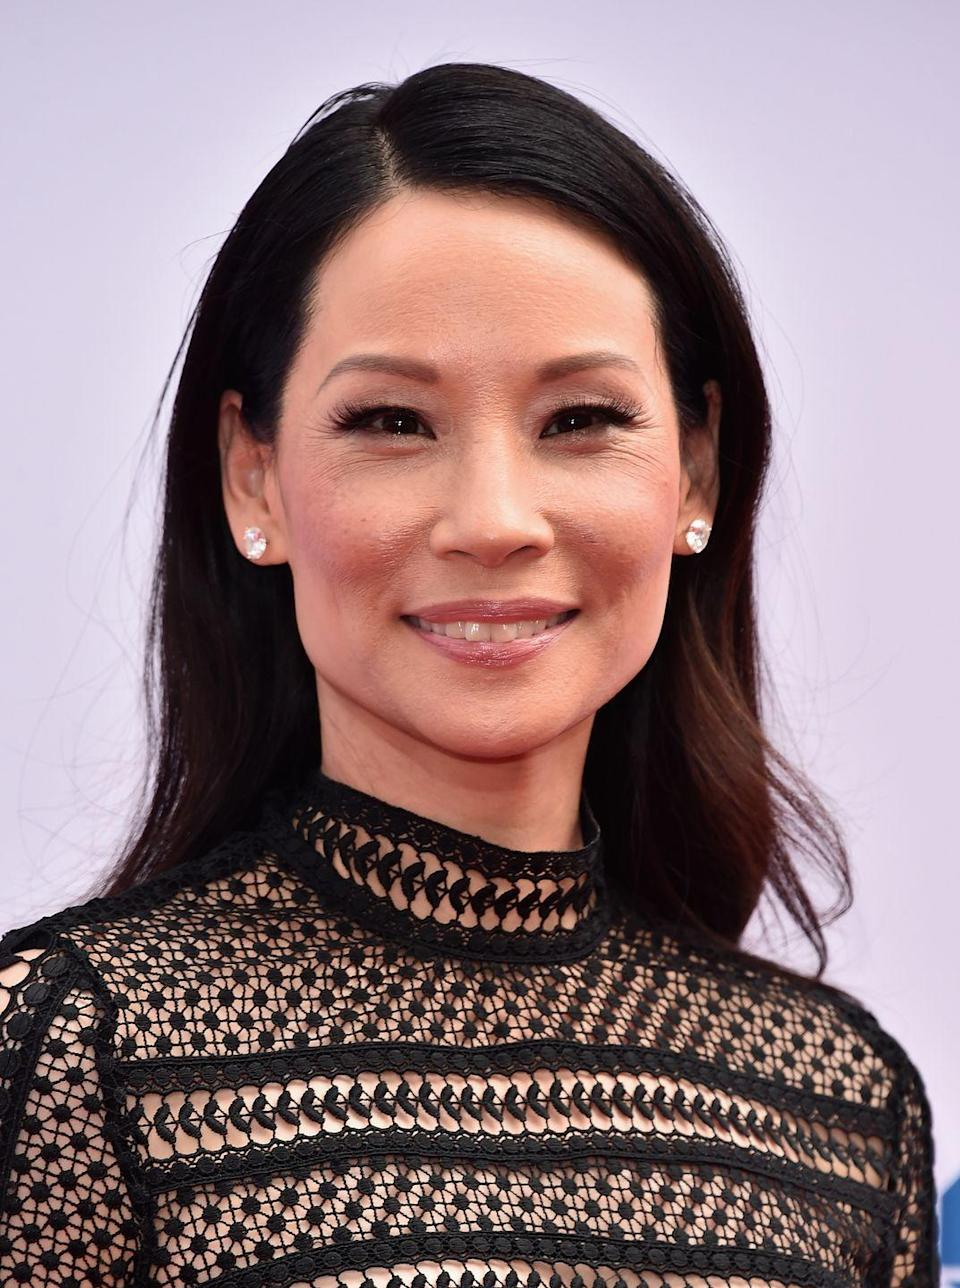 <p>You'd think Lucy Liu facing off against Antonio Banderas would at least be good enough to merit a 1% Rotten Tomatoes rating...but <em>Ballistic: Ecks vs. Sever</em> manages to score a rare 0%. </p>